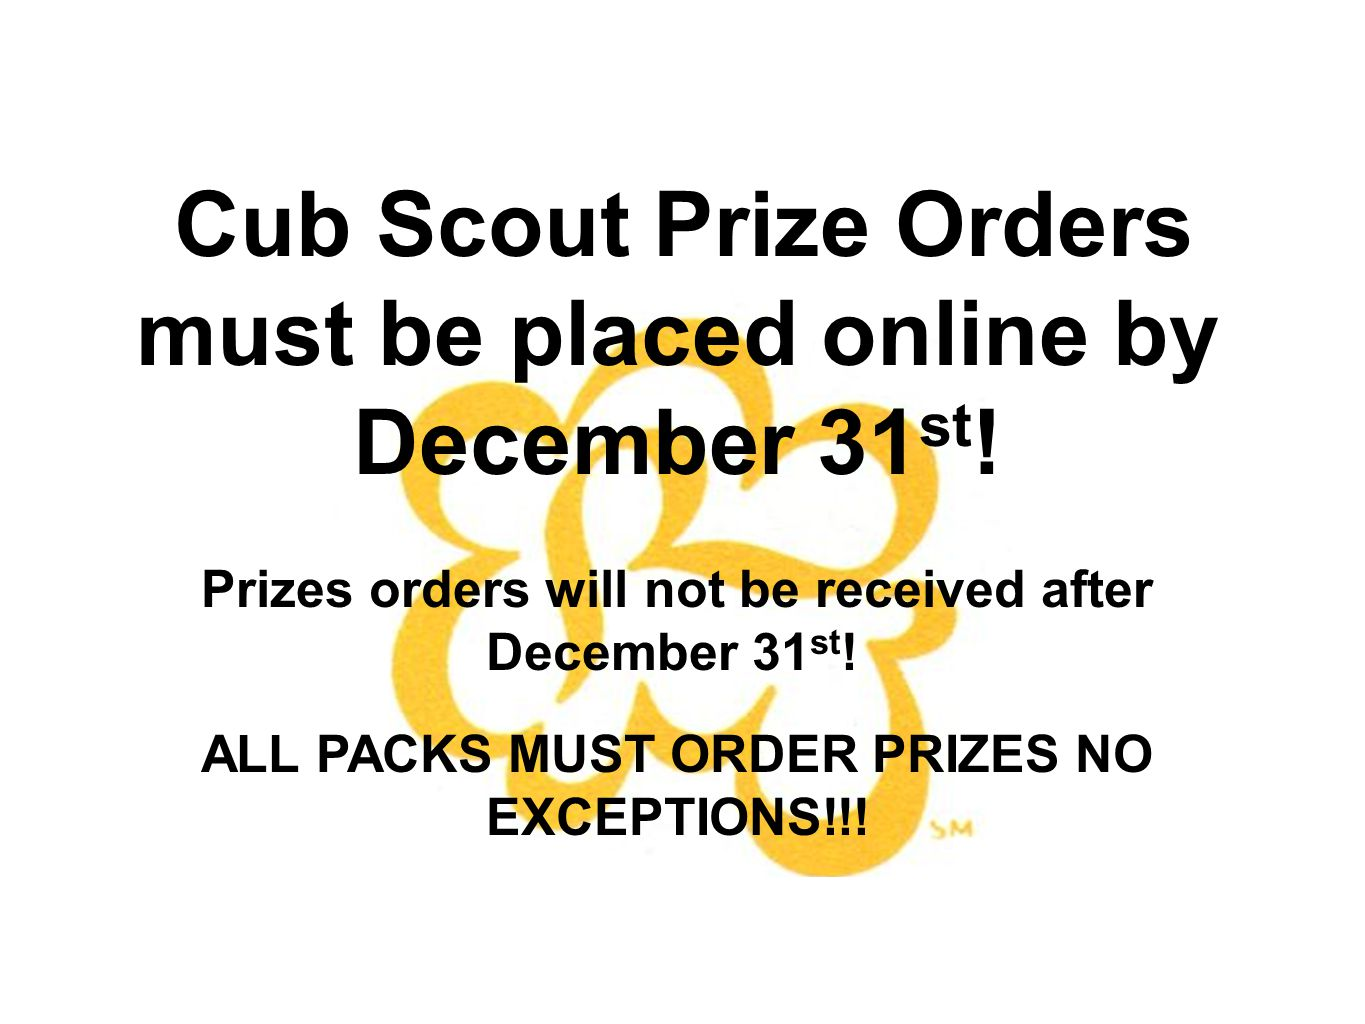 Cub Scout Prize Orders must be placed online by December 31 st .